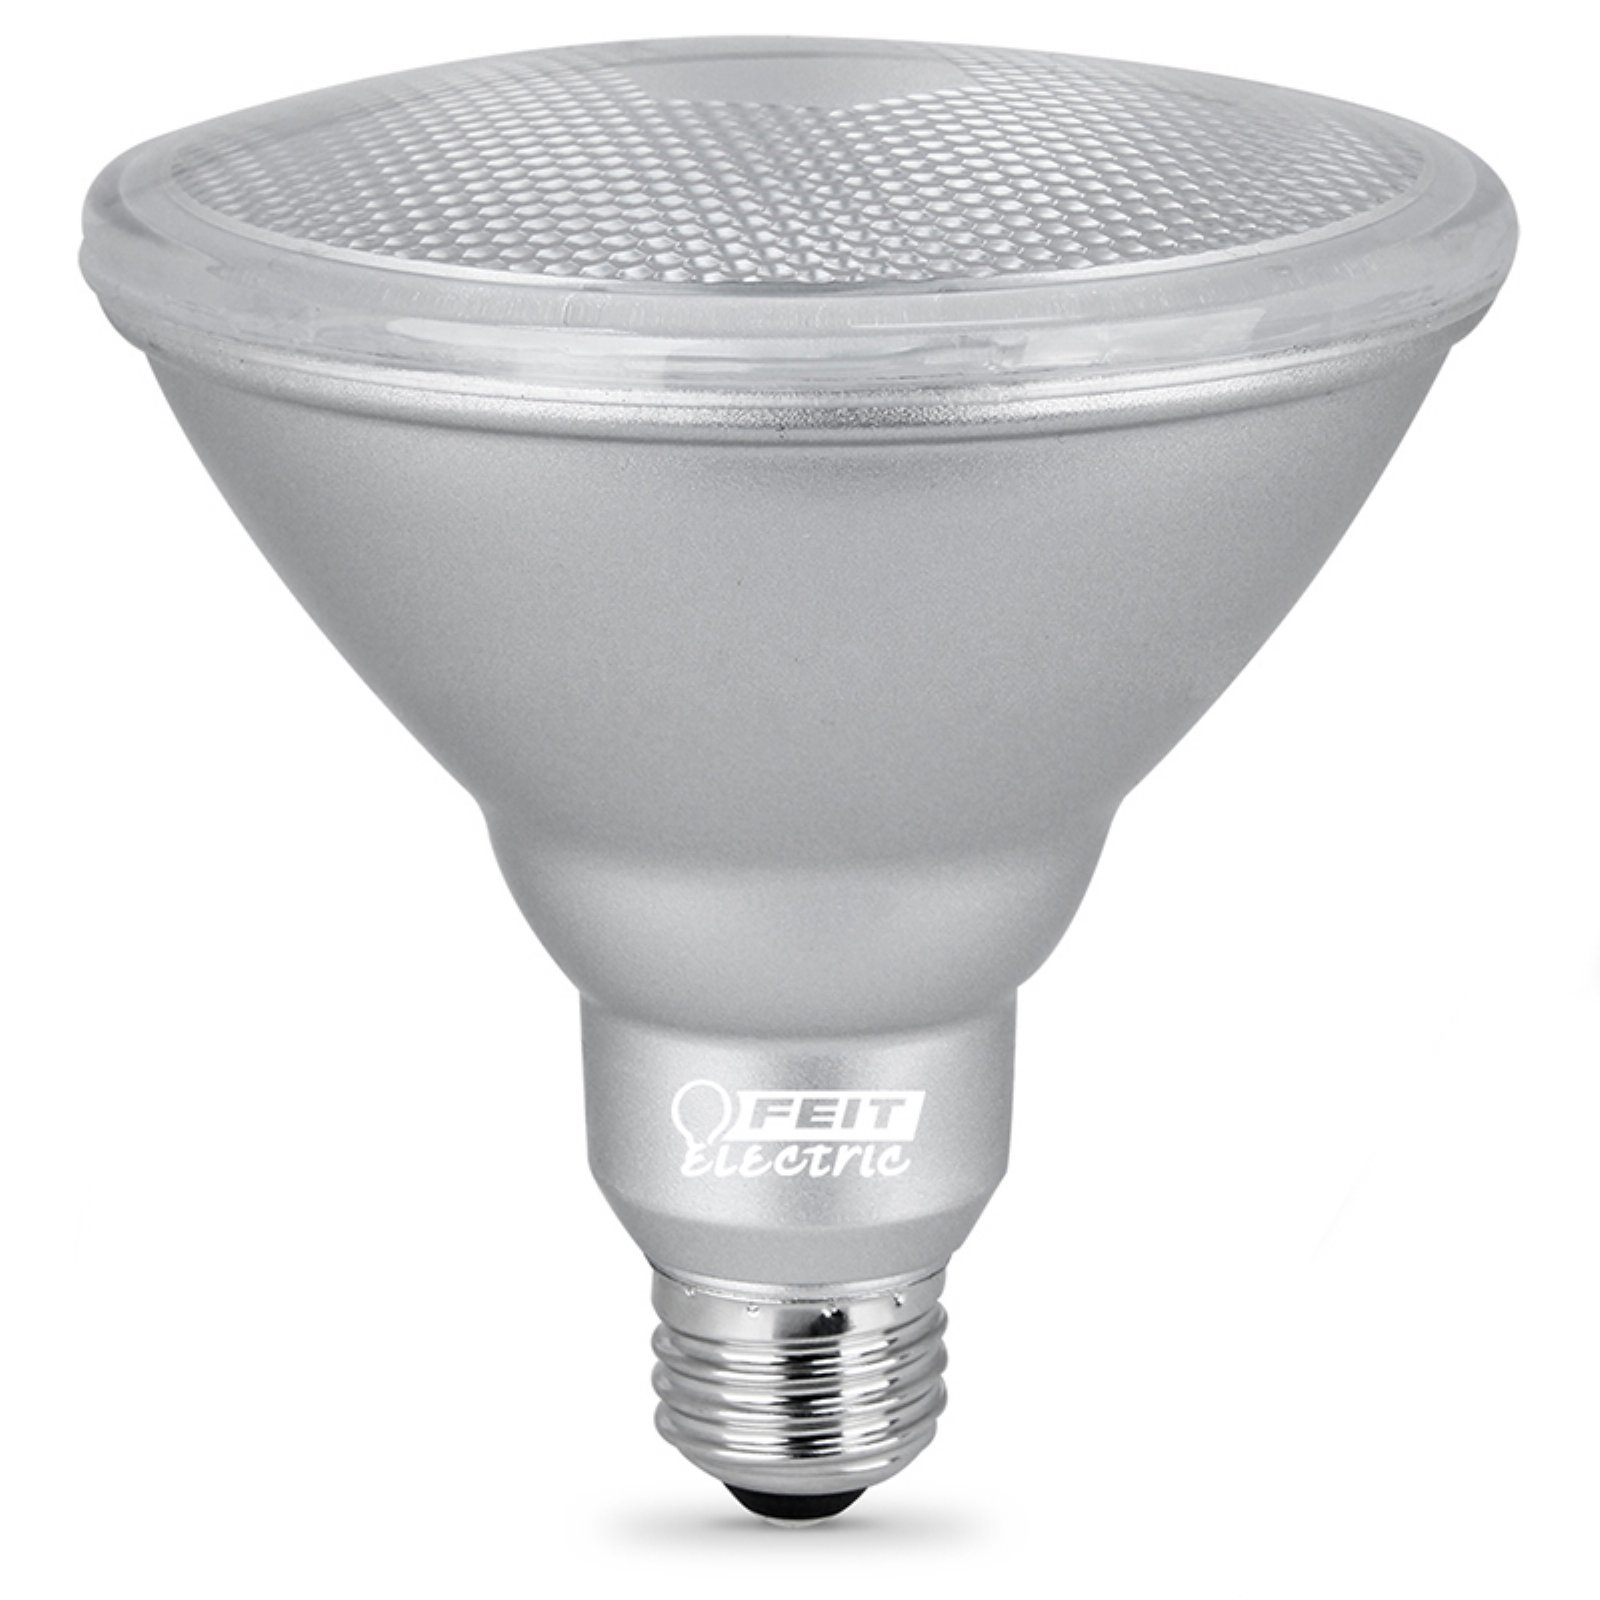 Feit Electric 14W Weatherproof Dimmable Performance LED Light Bulb - 2 pk.